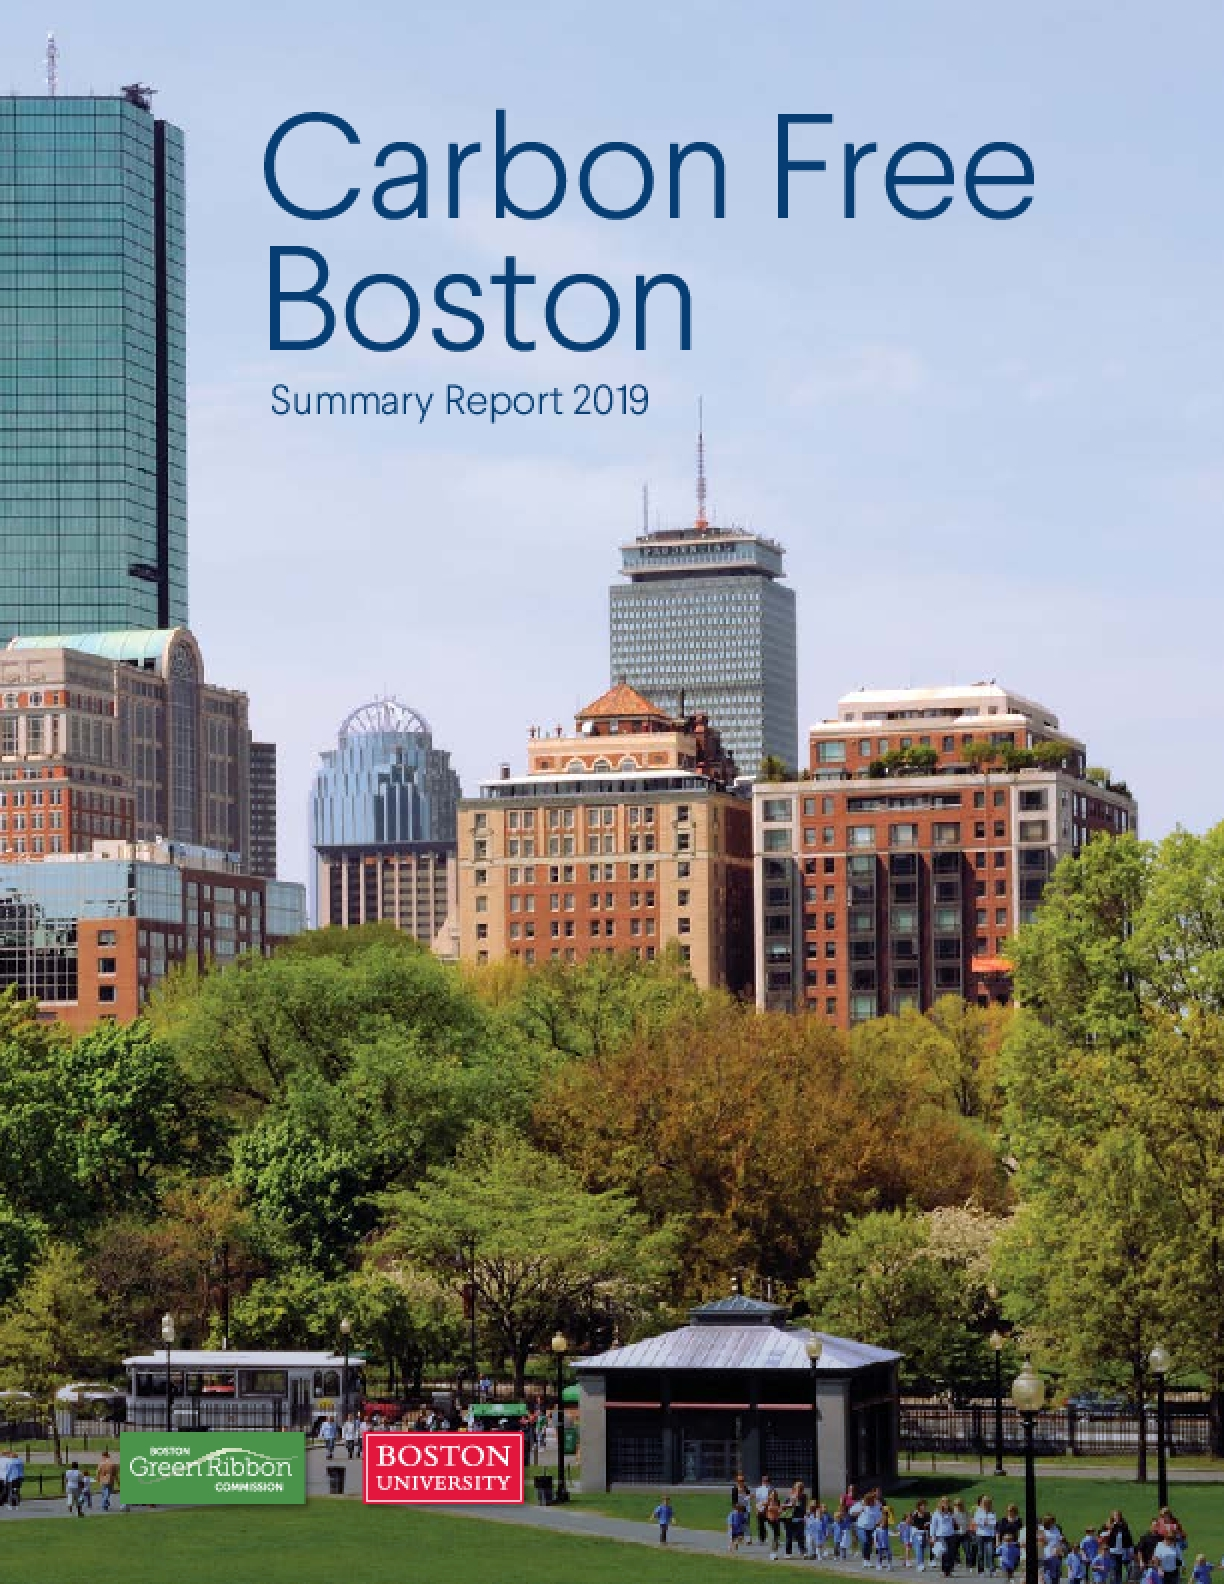 Carbon Free Boston: Summary Report 2019